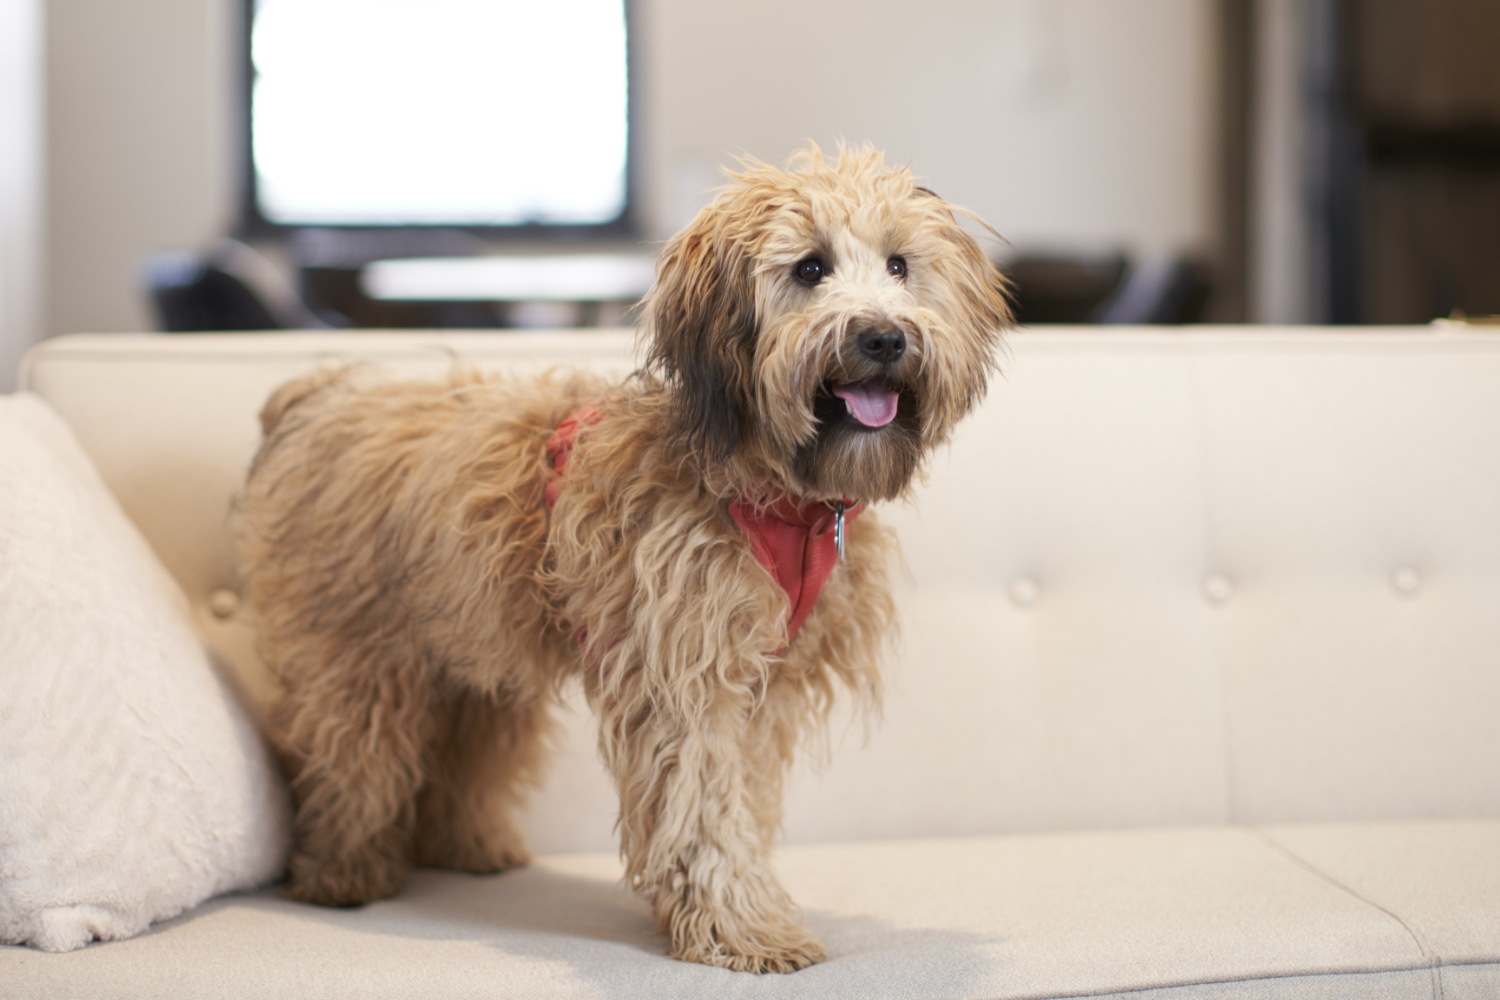 Photo of dog standing on a couch